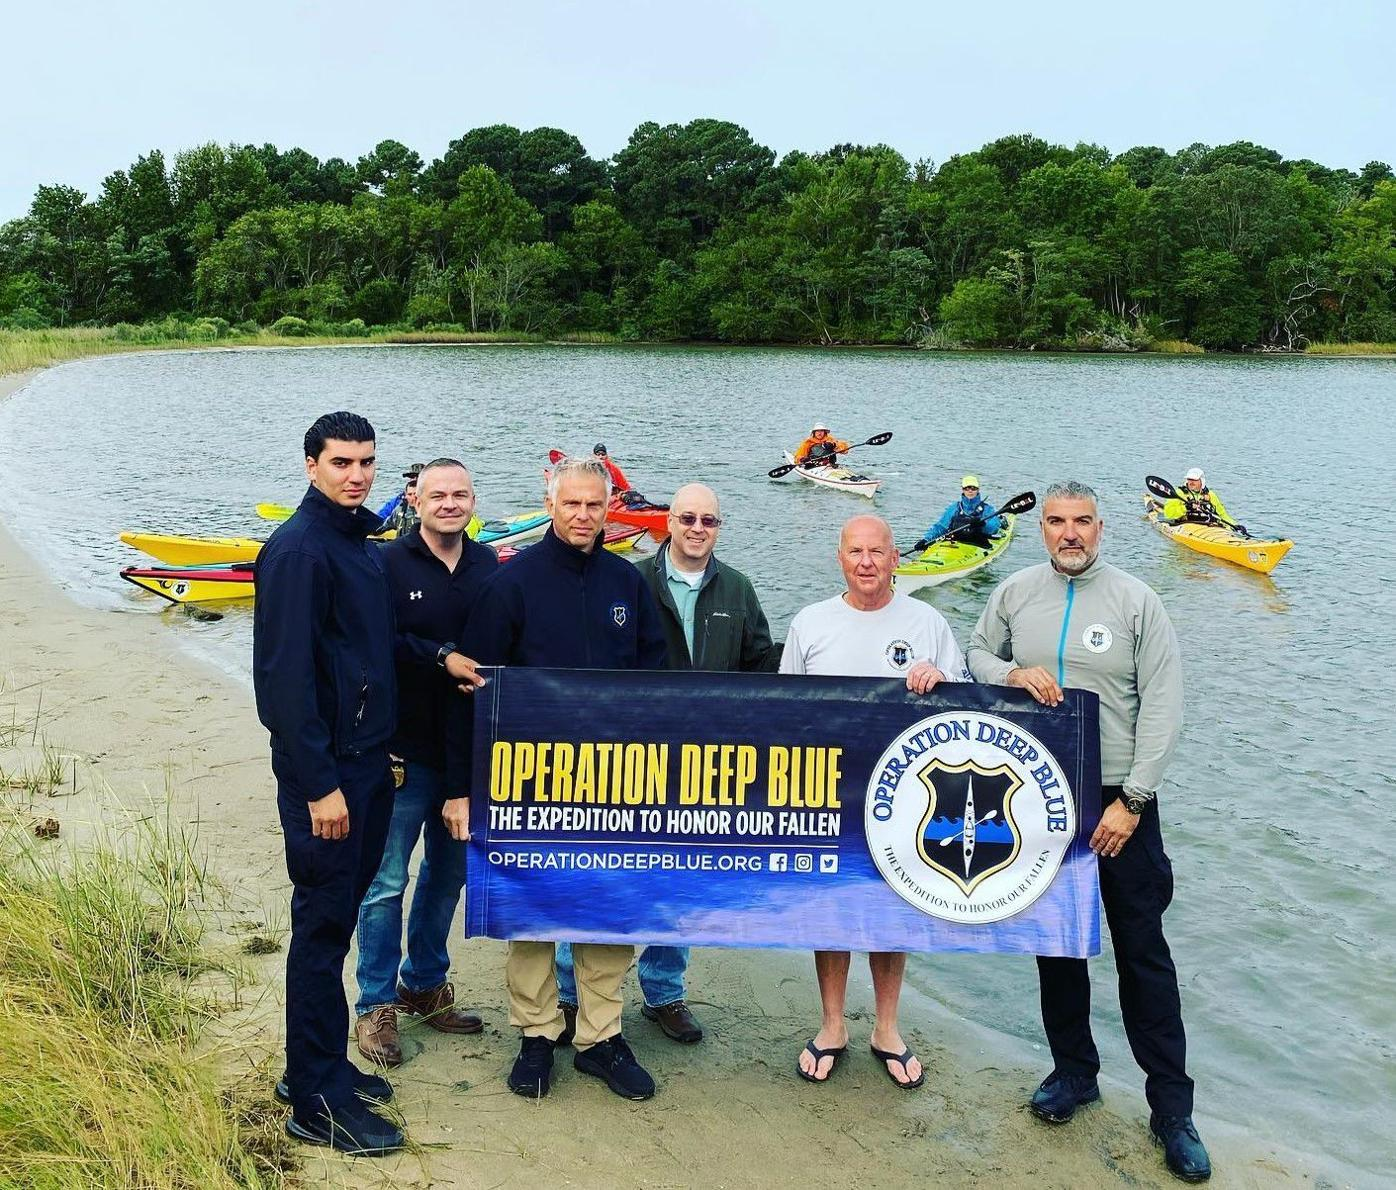 Kayaking to raise money for families of fallen heroes